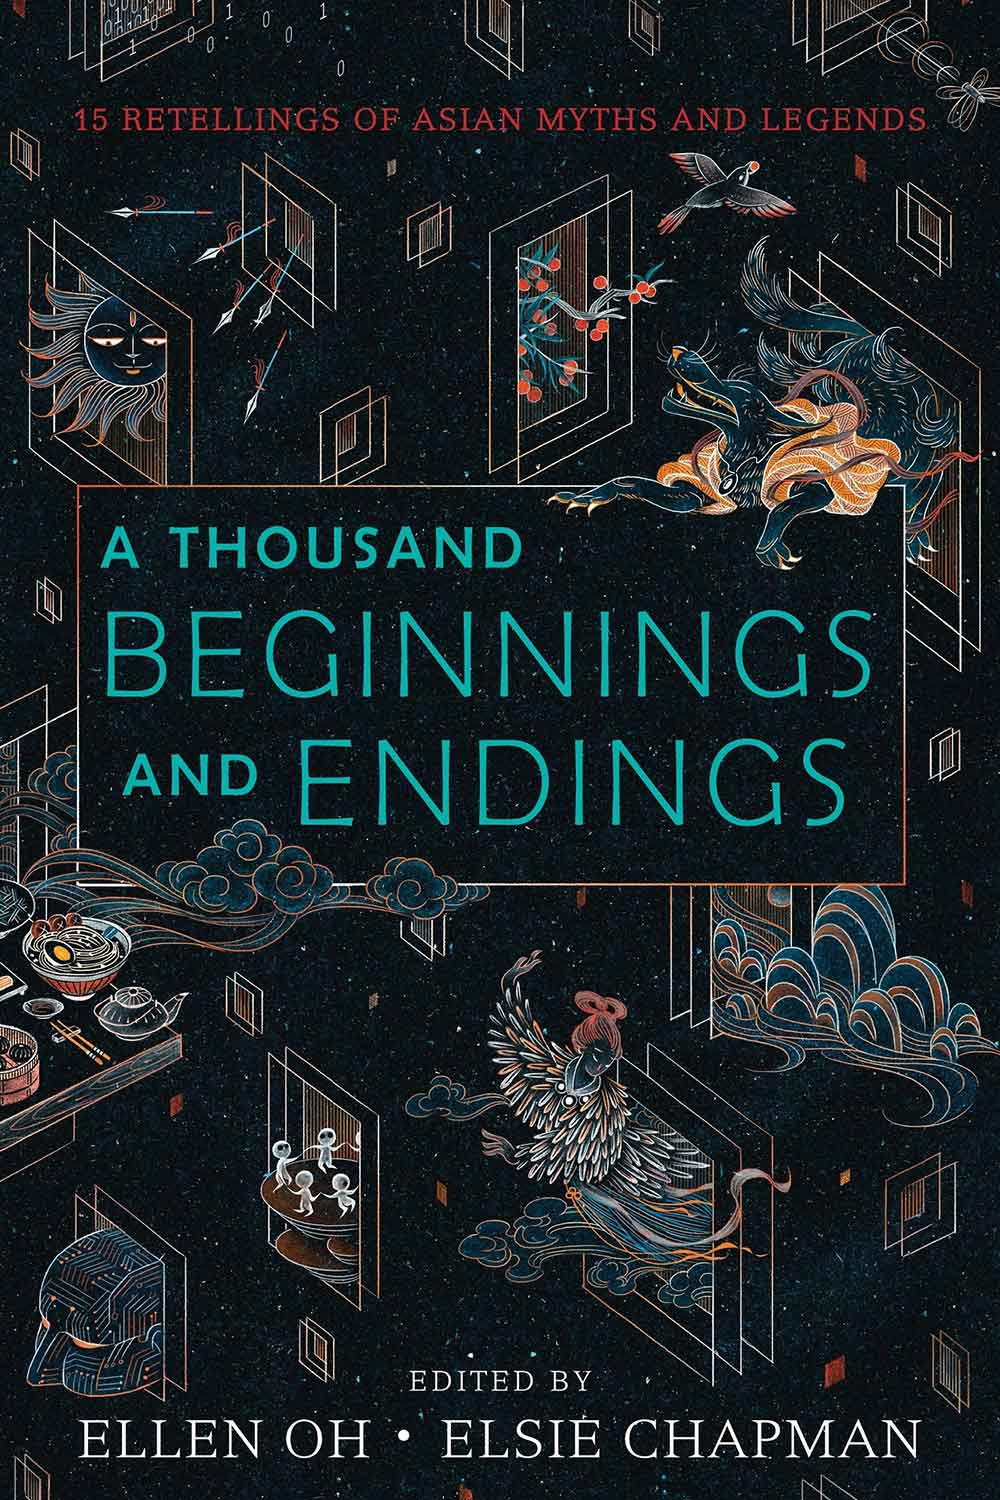 05-A-Thousand-Beginnings-and-Endings